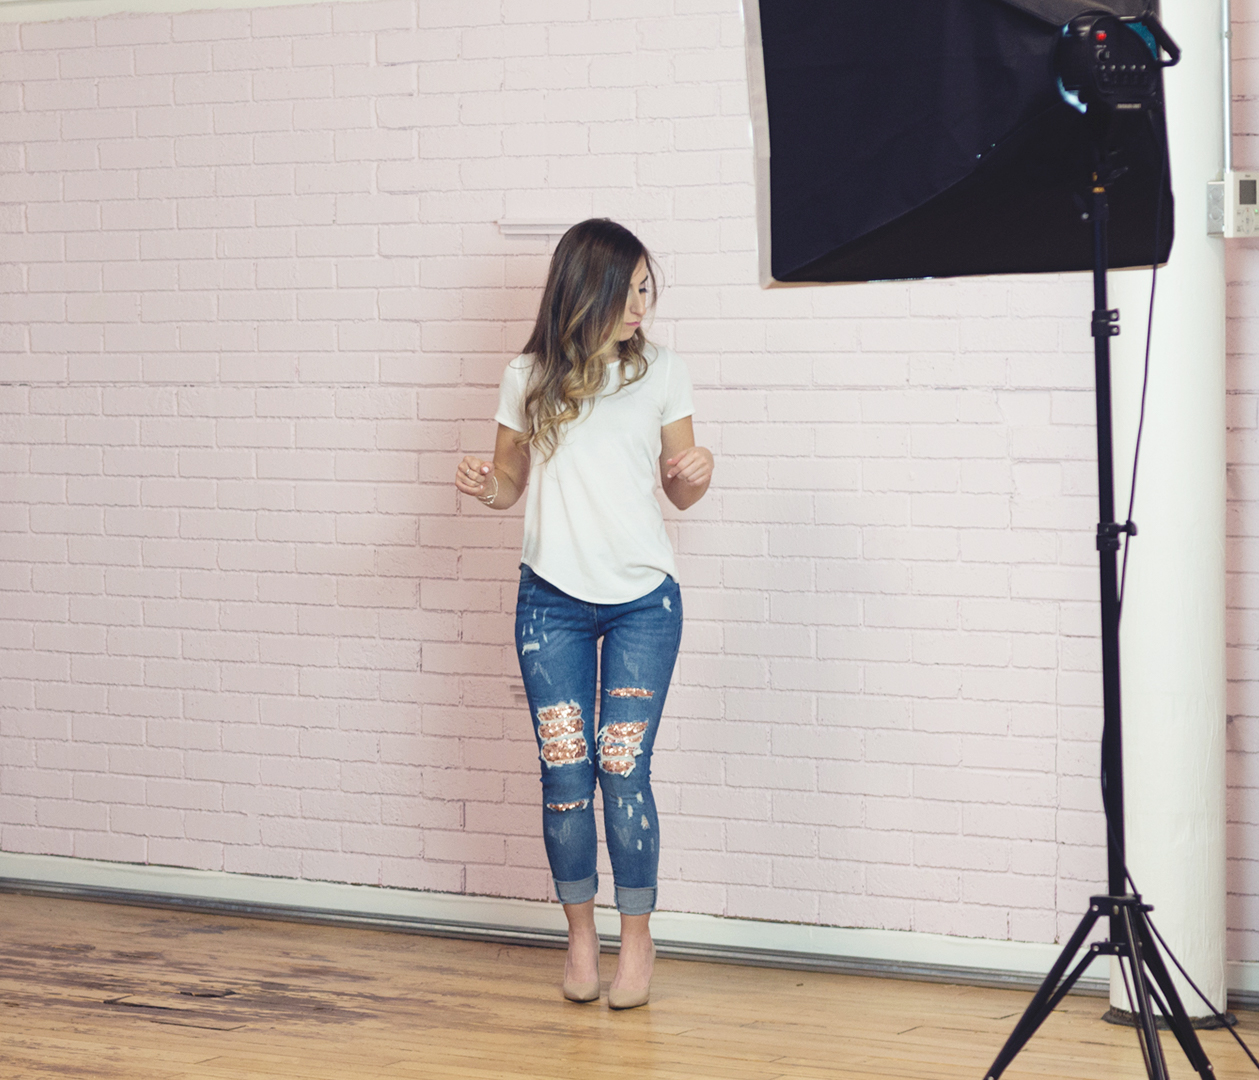 Tanya Conner-Green dancing in front of a pink brick wall with a photography studio light in the foreground